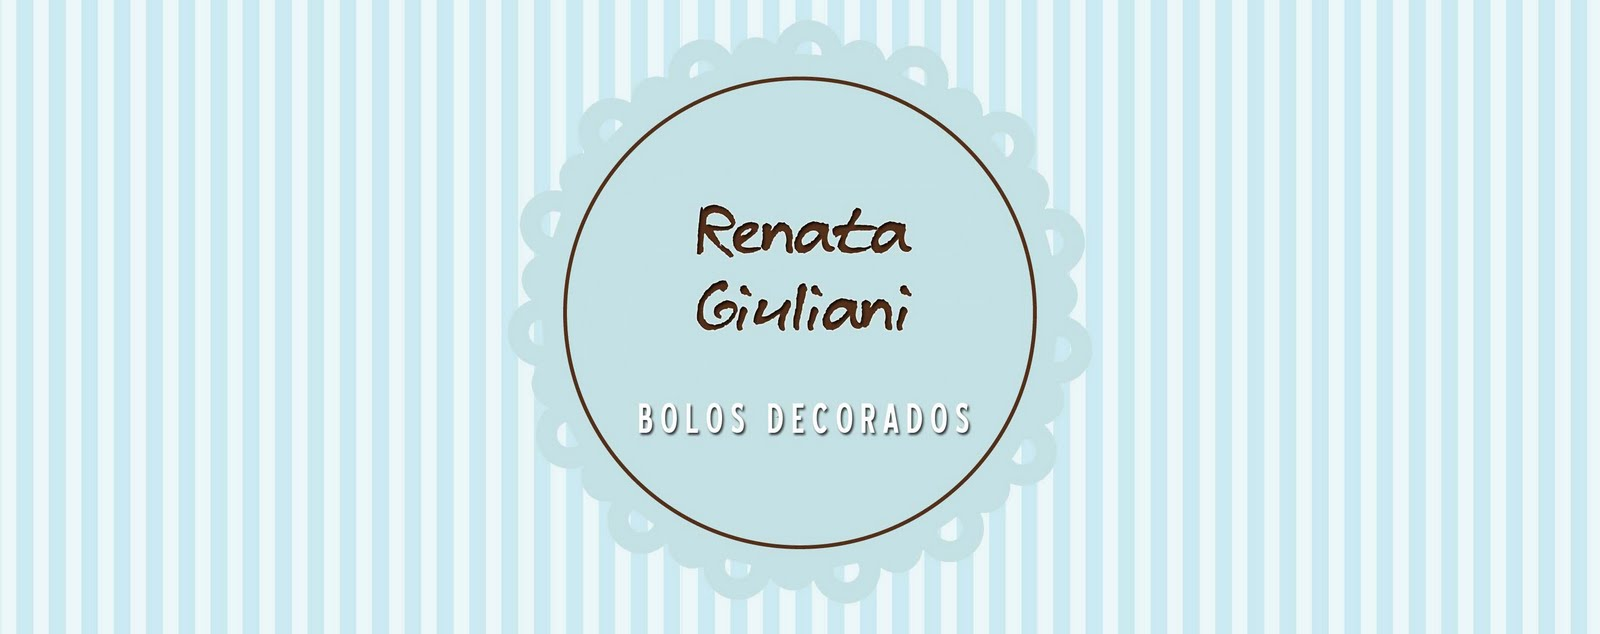 Renata Giuliani Bolos Decorados